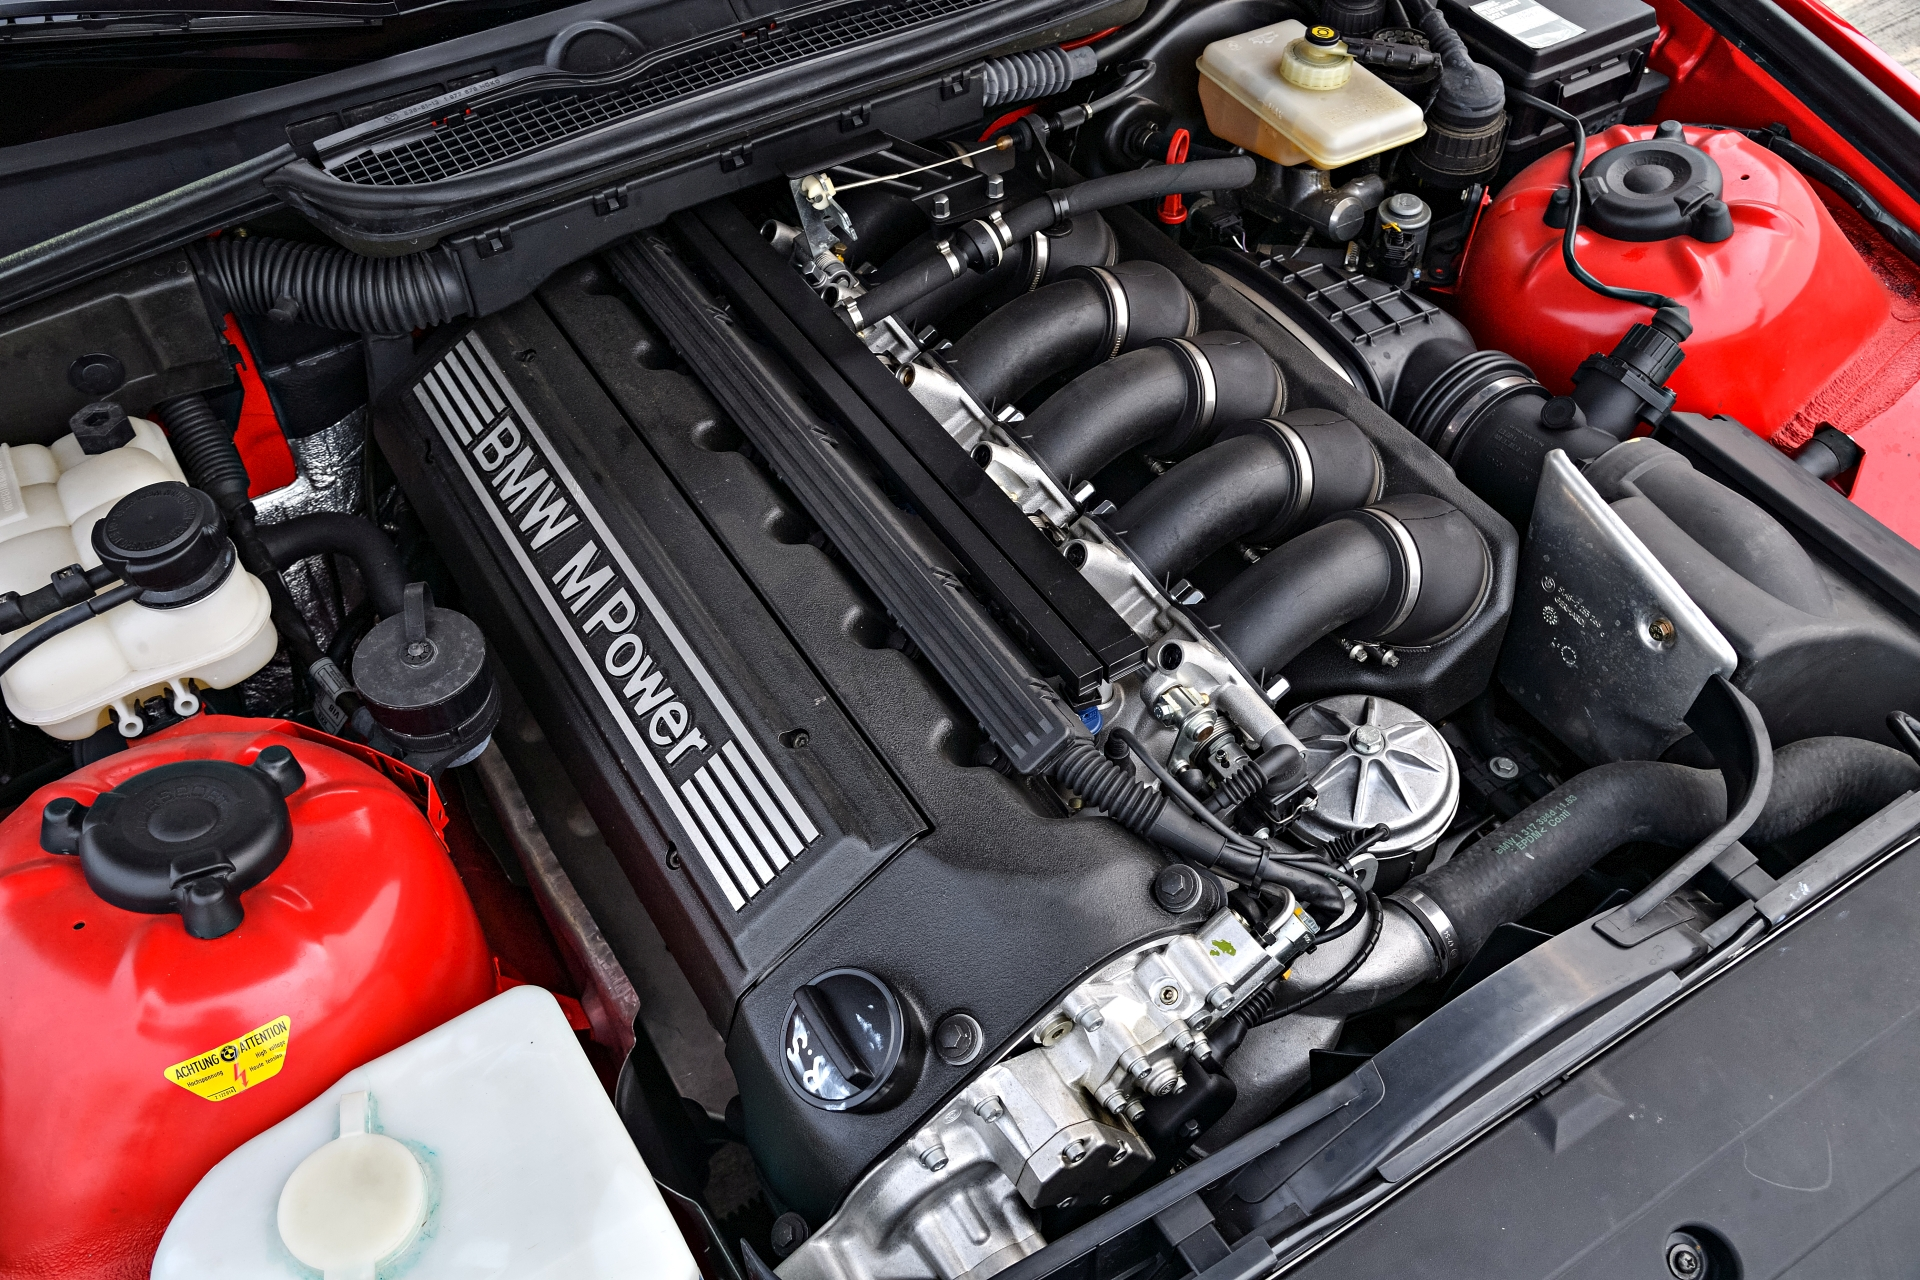 An extensive facelift in 1995 saw the displacement of the six-cylinder  in-line engine increased from 2,990 to 3,201cc, with output rising to 236  kW/321 hp.